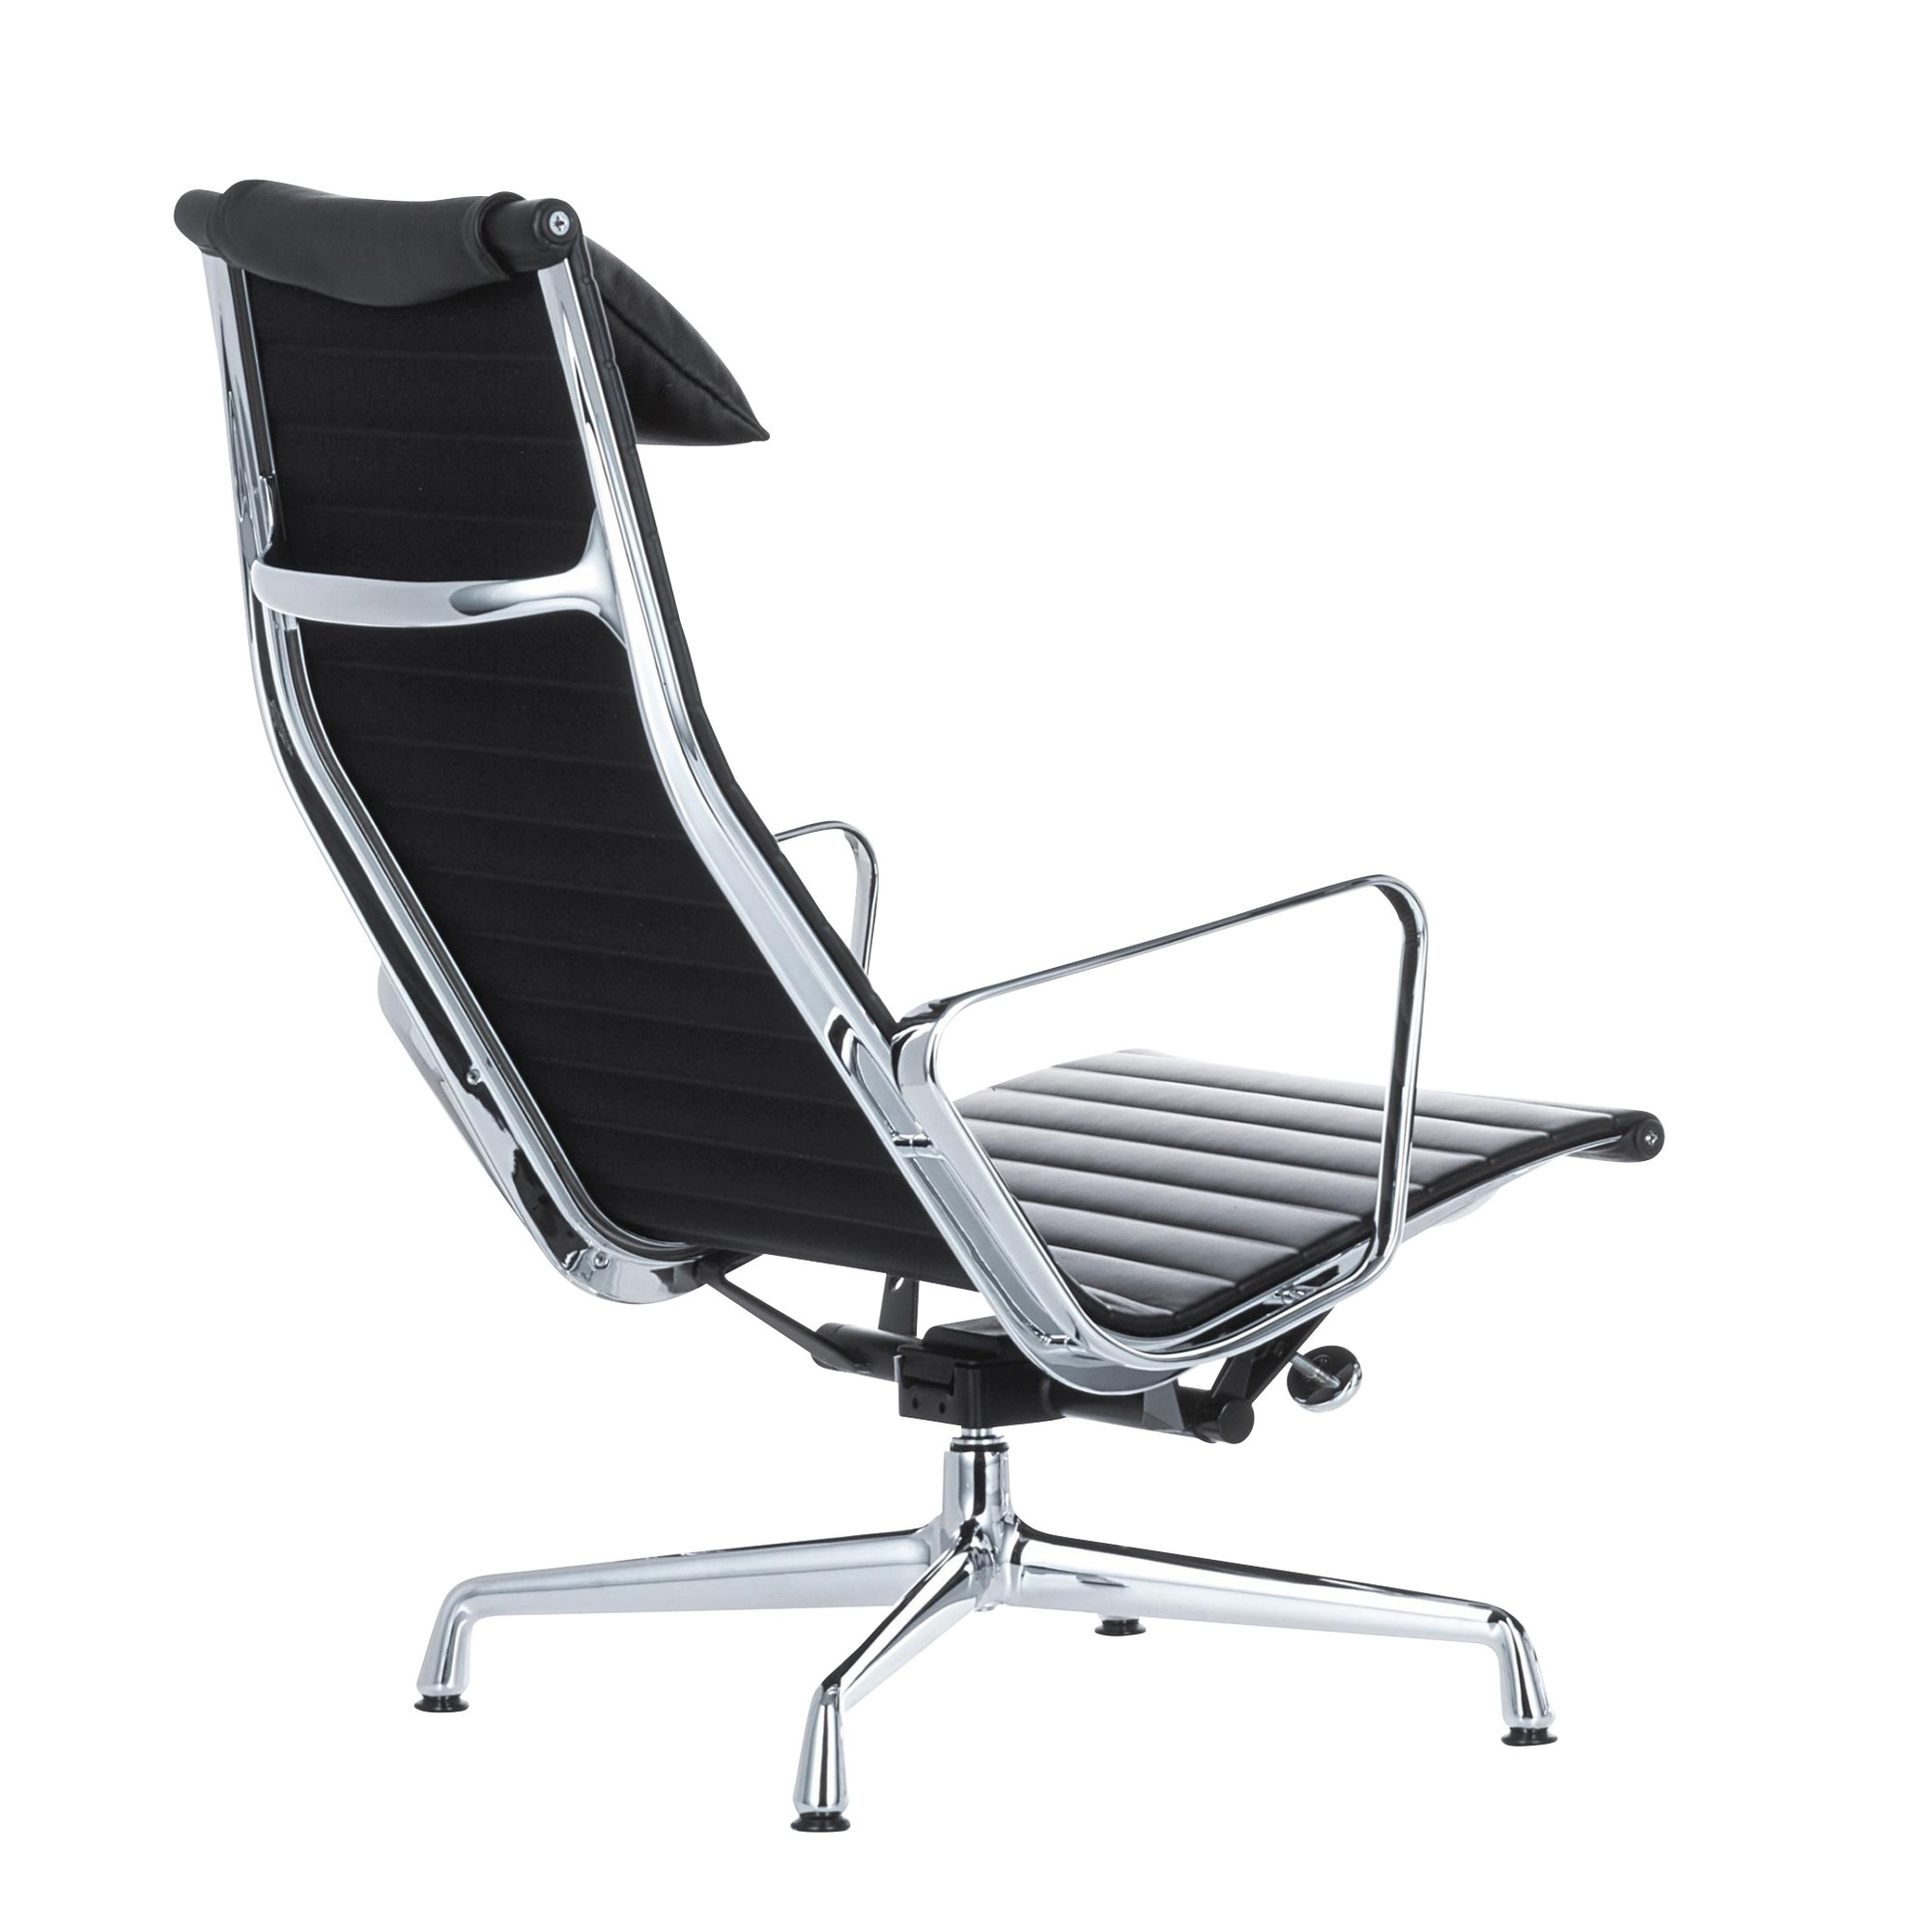 Drehsessel Leder Ea 124 Aluminium Chair Swivel Chair